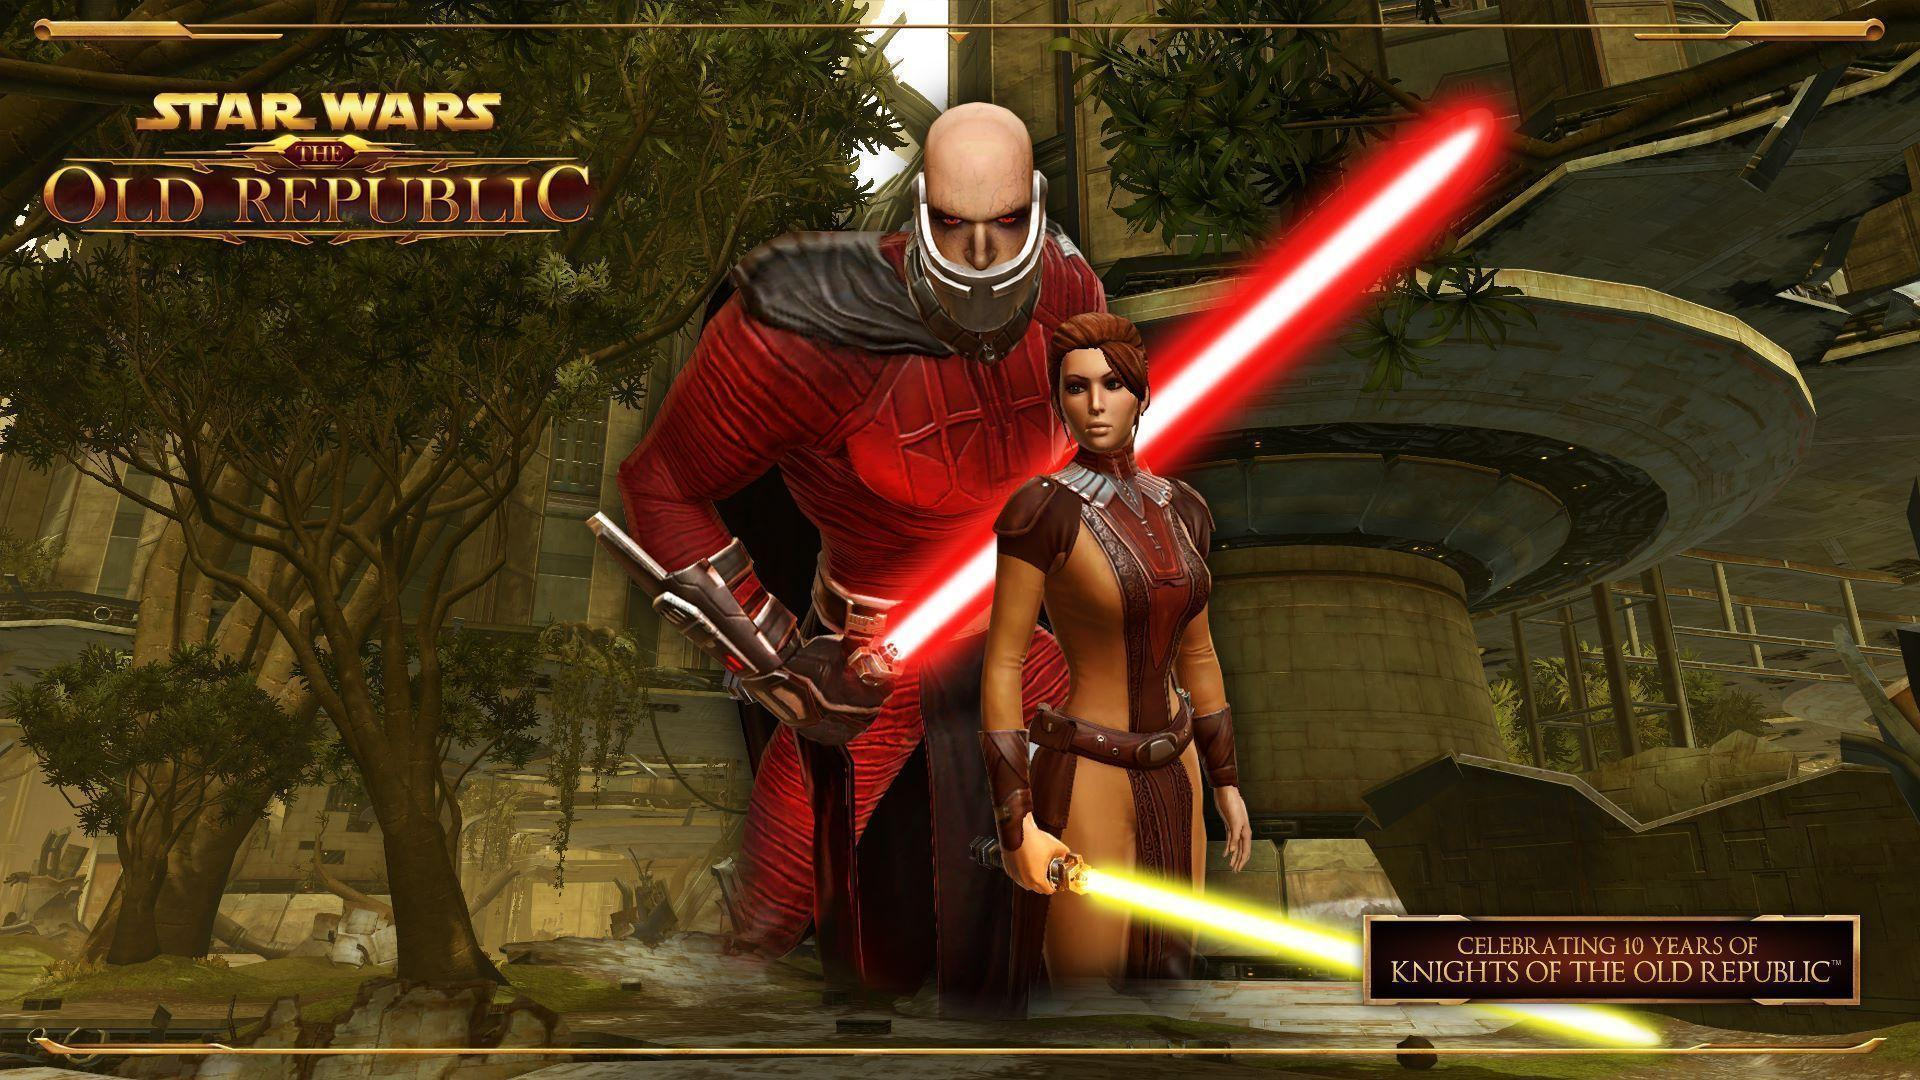 Star Wars: The Old Republic Wallpapers